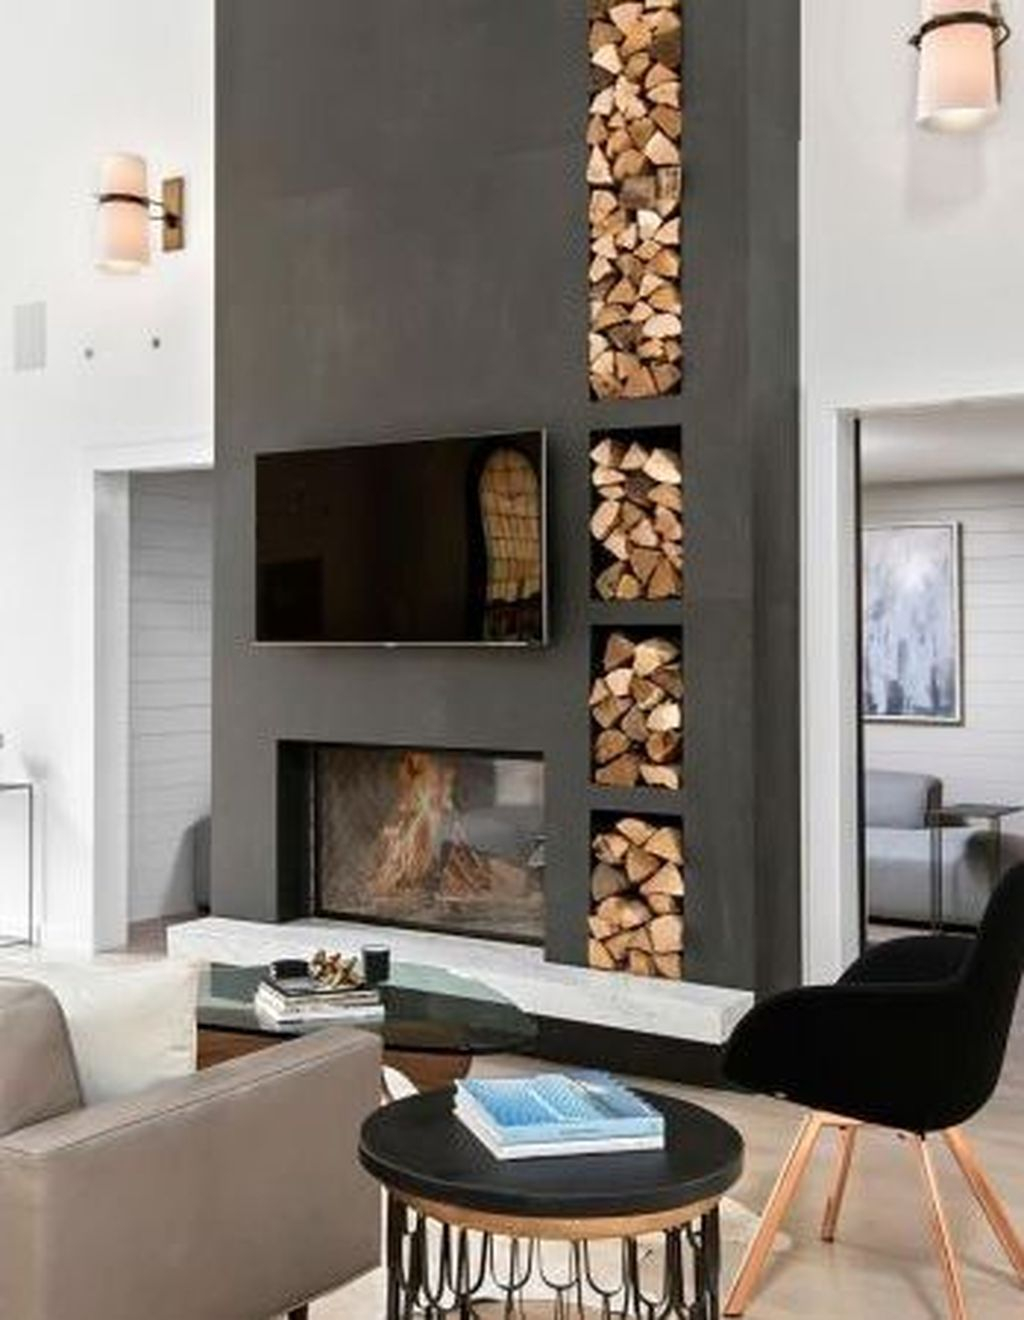 Cool Scandinavian Fireplace Design Ideas To Amaze Your Guests 12